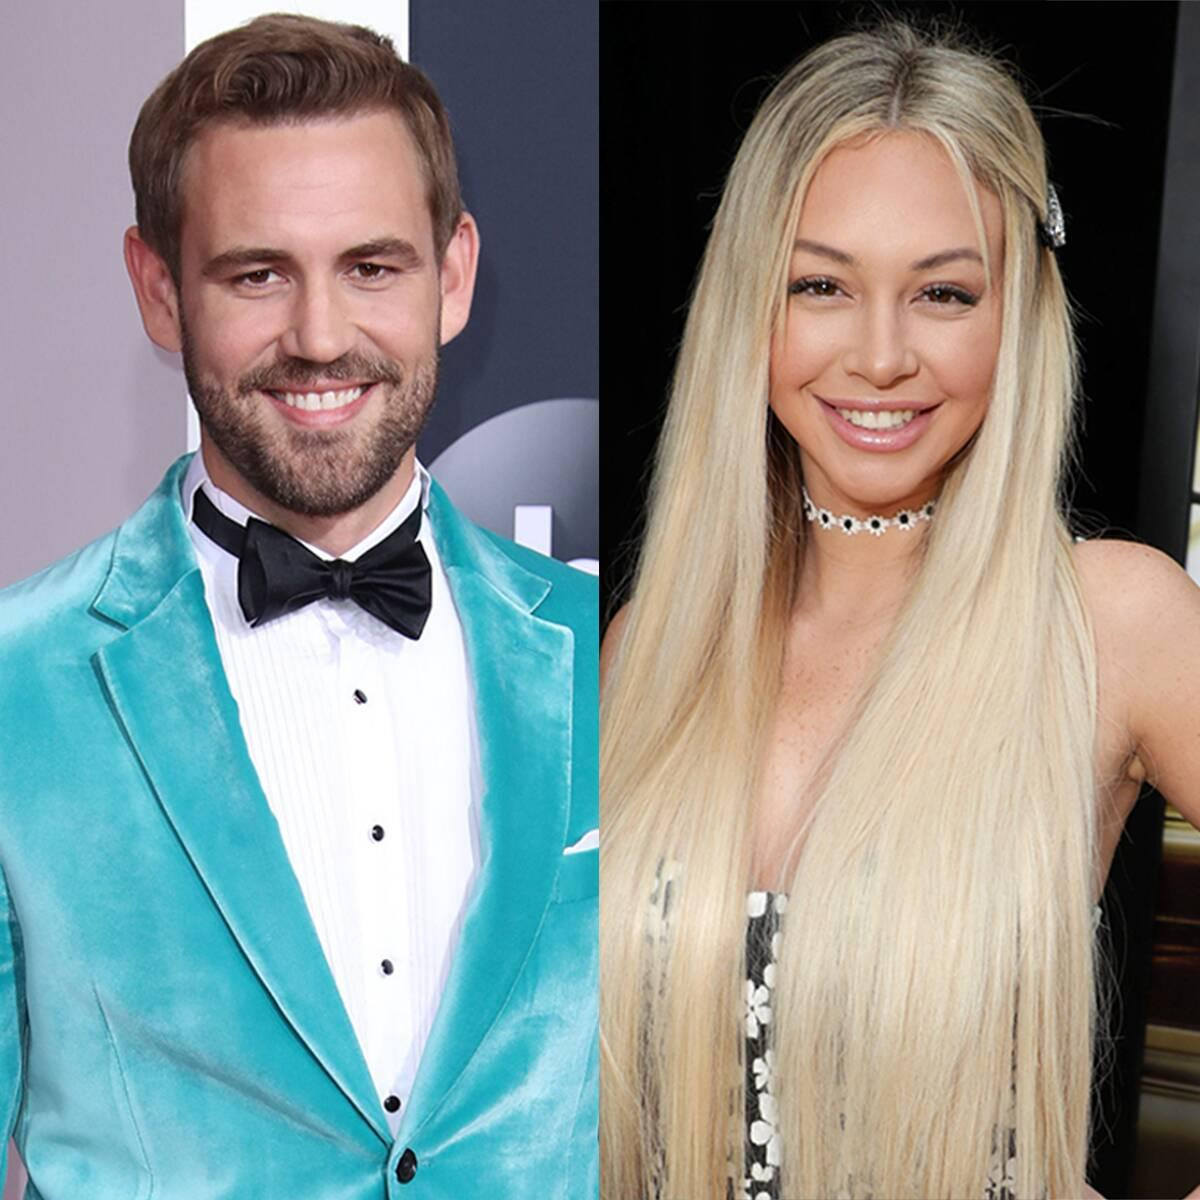 """Corinne Olympios Thought Her Life Was """"Over"""" After Acting Like a """"Psychopath"""" On The Bachelor thumbnail"""